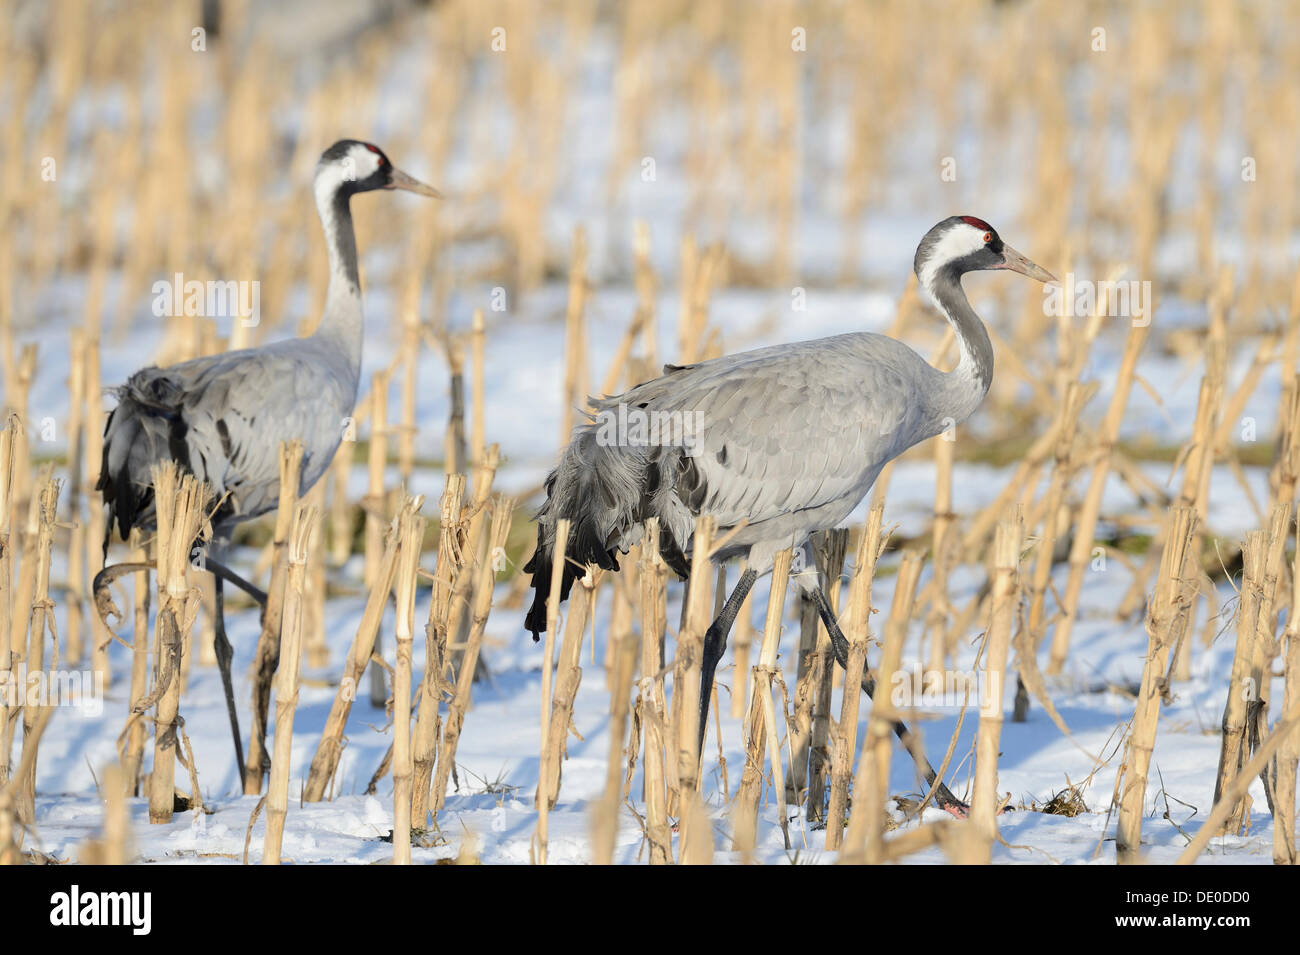 Cranes (Grus grus) search for food in a snow-covered cornfield - Stock Image